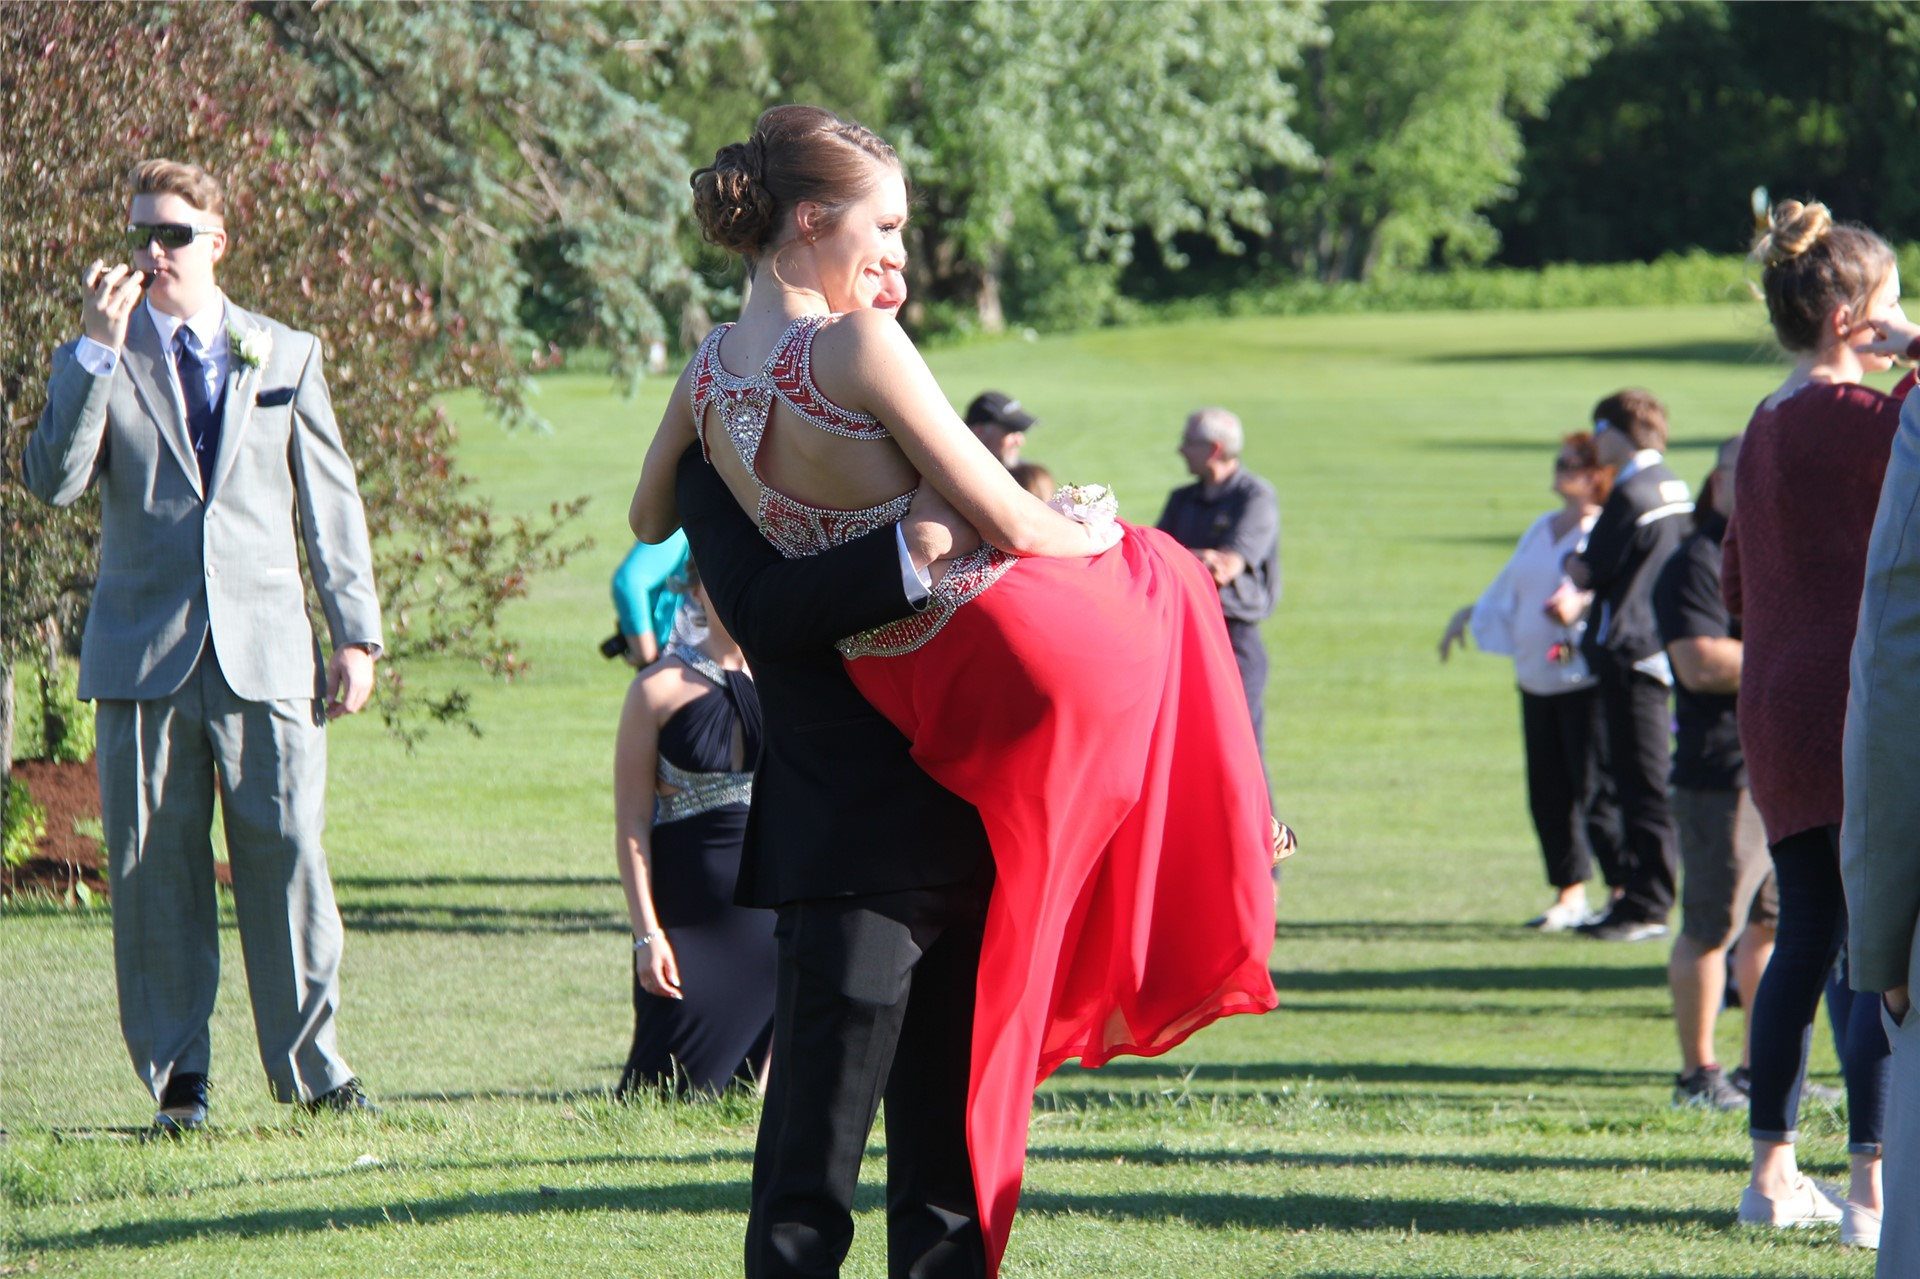 Student carries prom date in arms as they pose for picture before prom